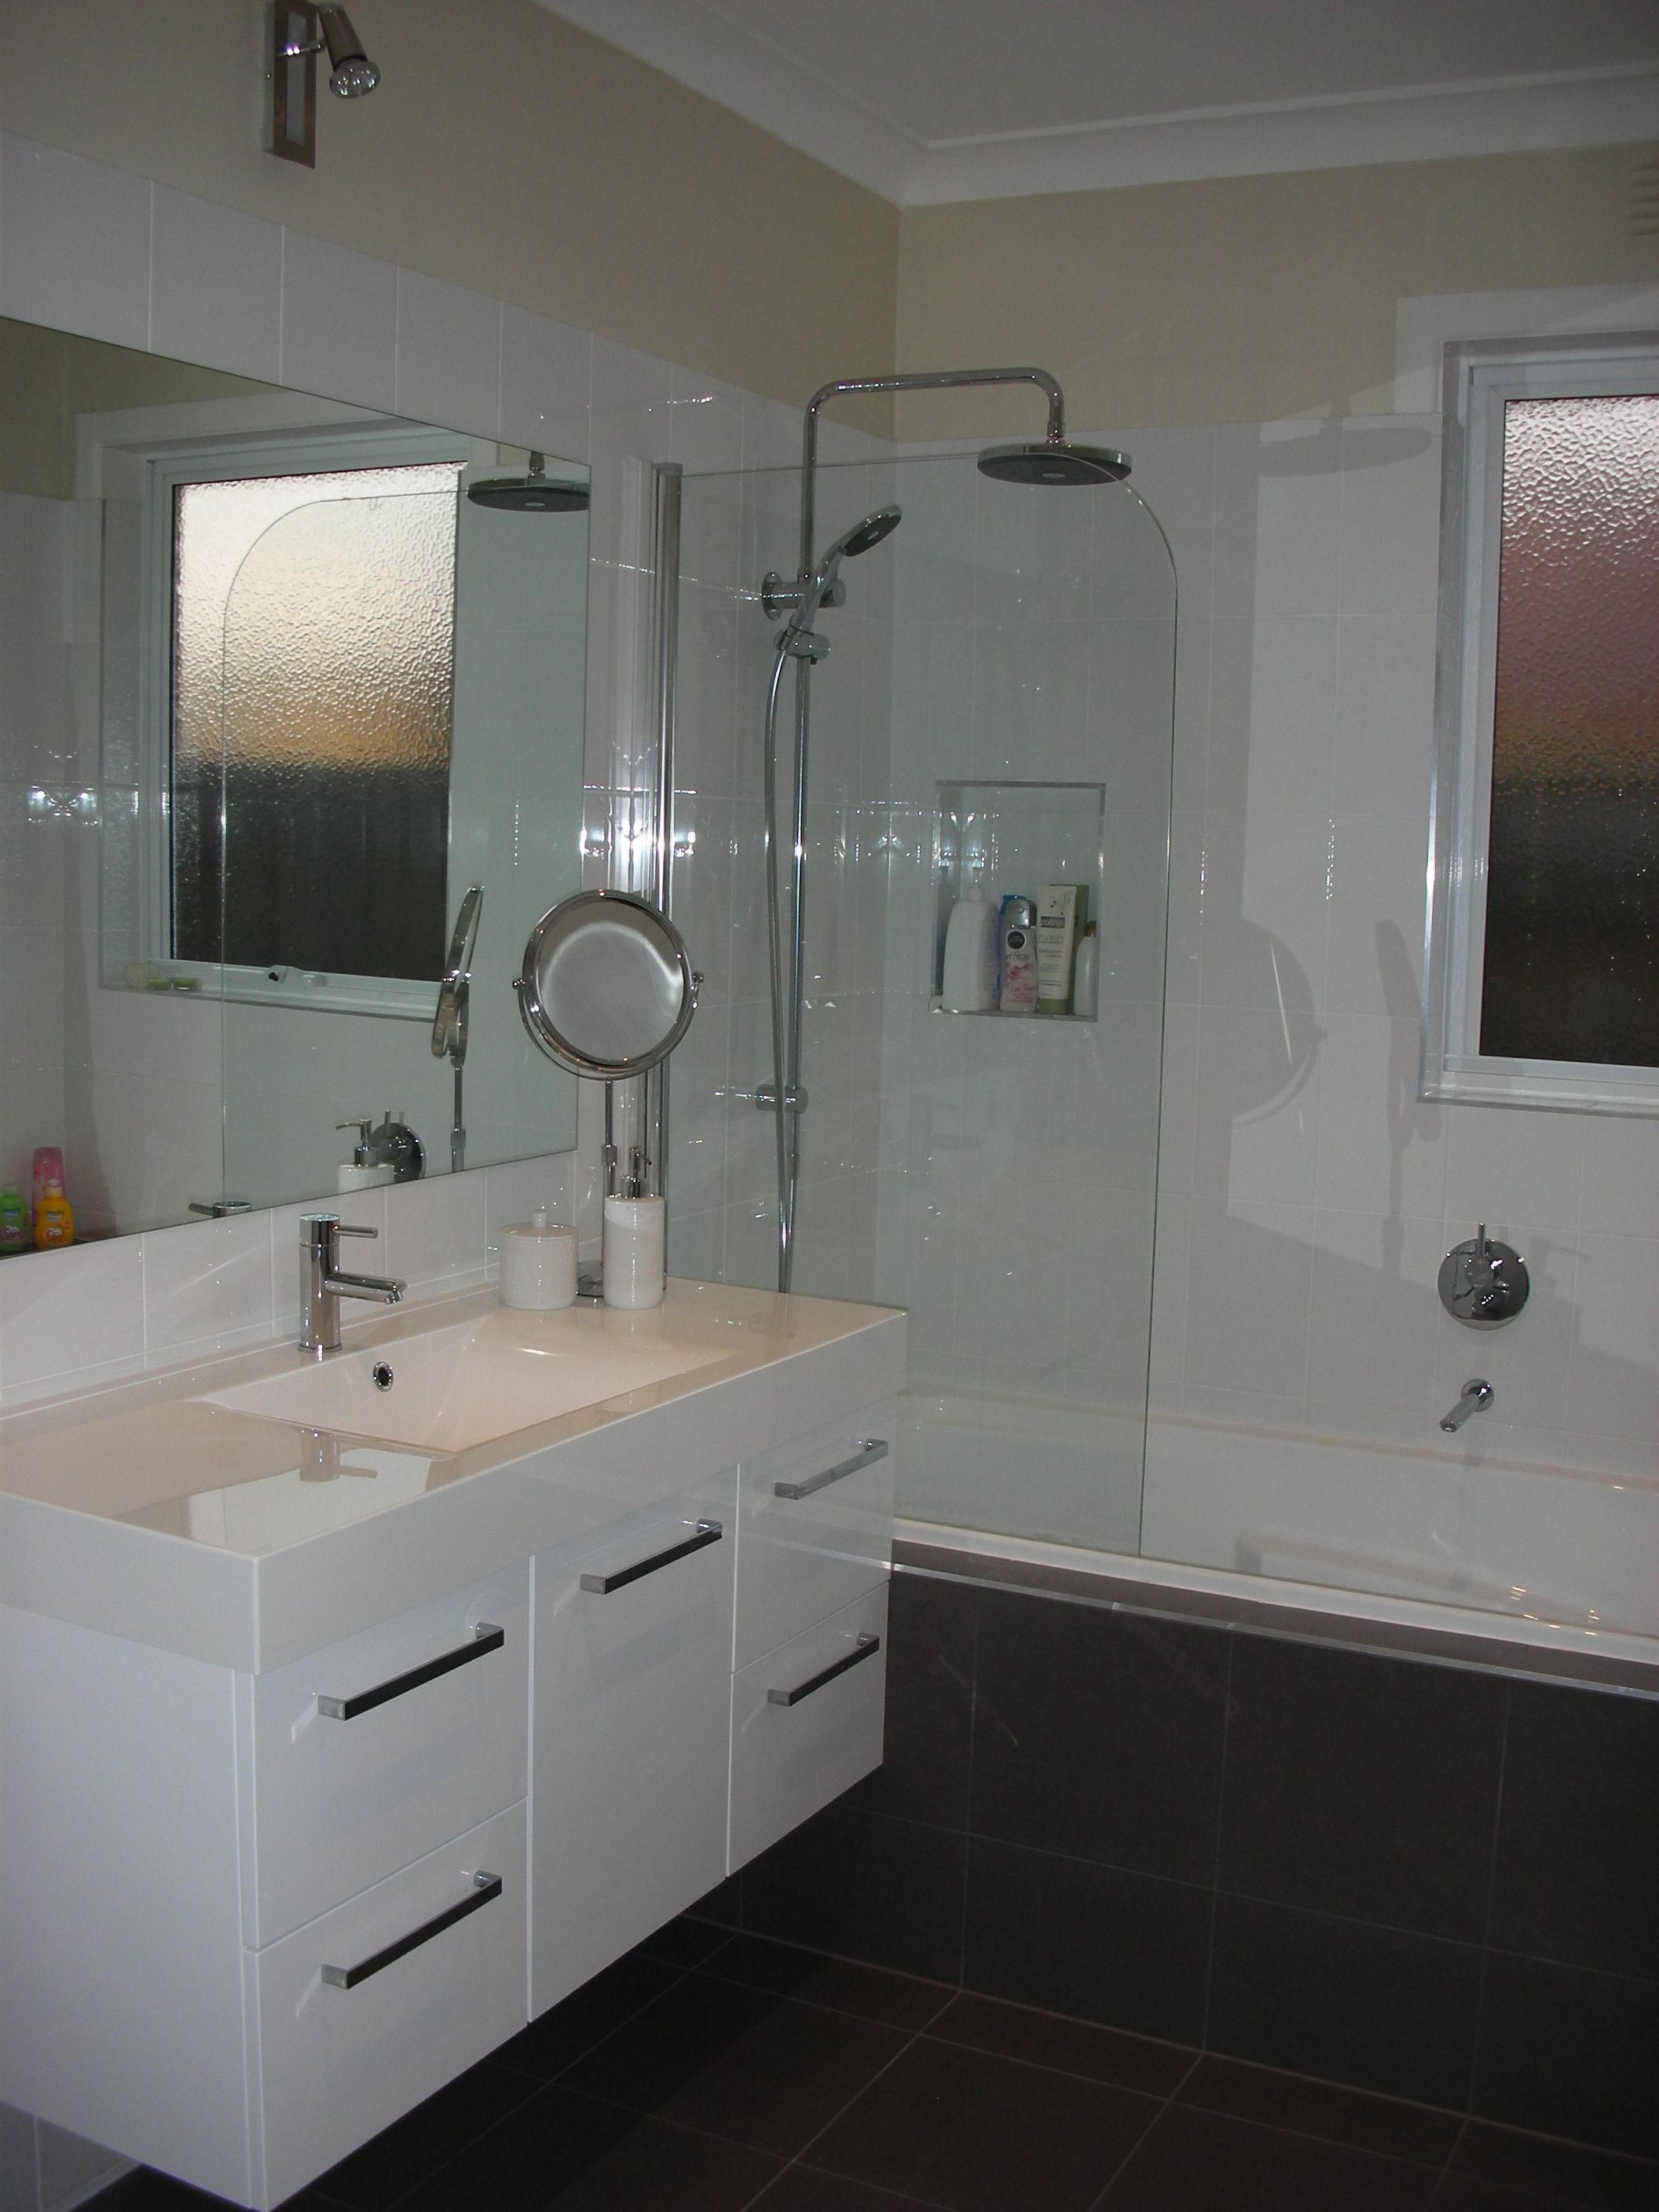 Bathroom renovation ideas and tricks for your bathroom with a limited space midcityeast Bathroom design company limited